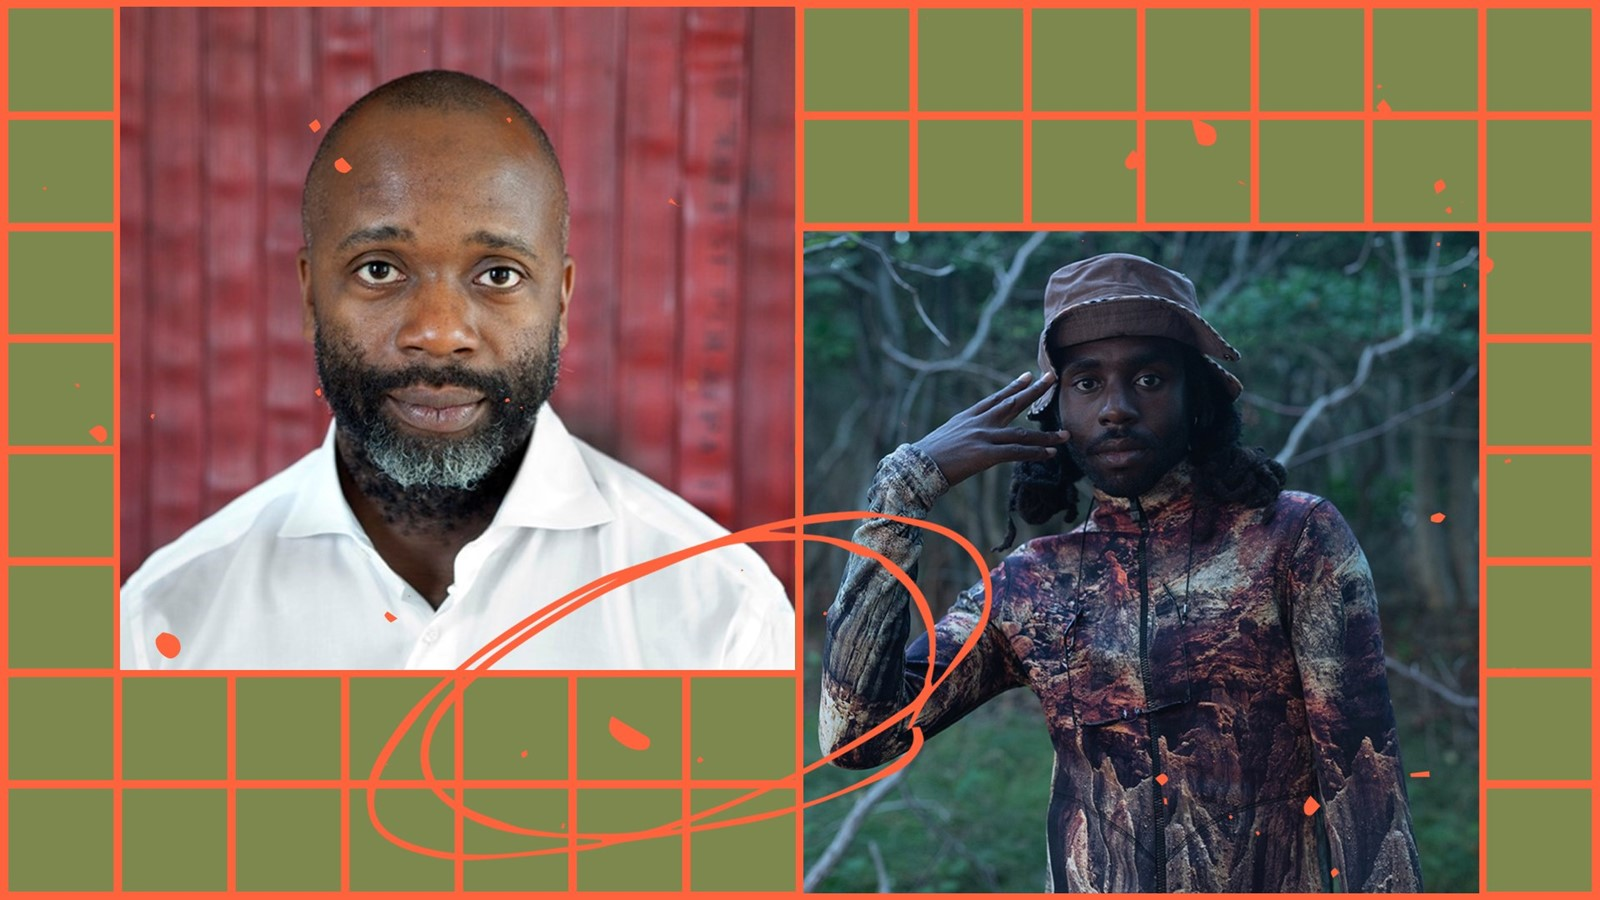 theaster gates and dev hynes